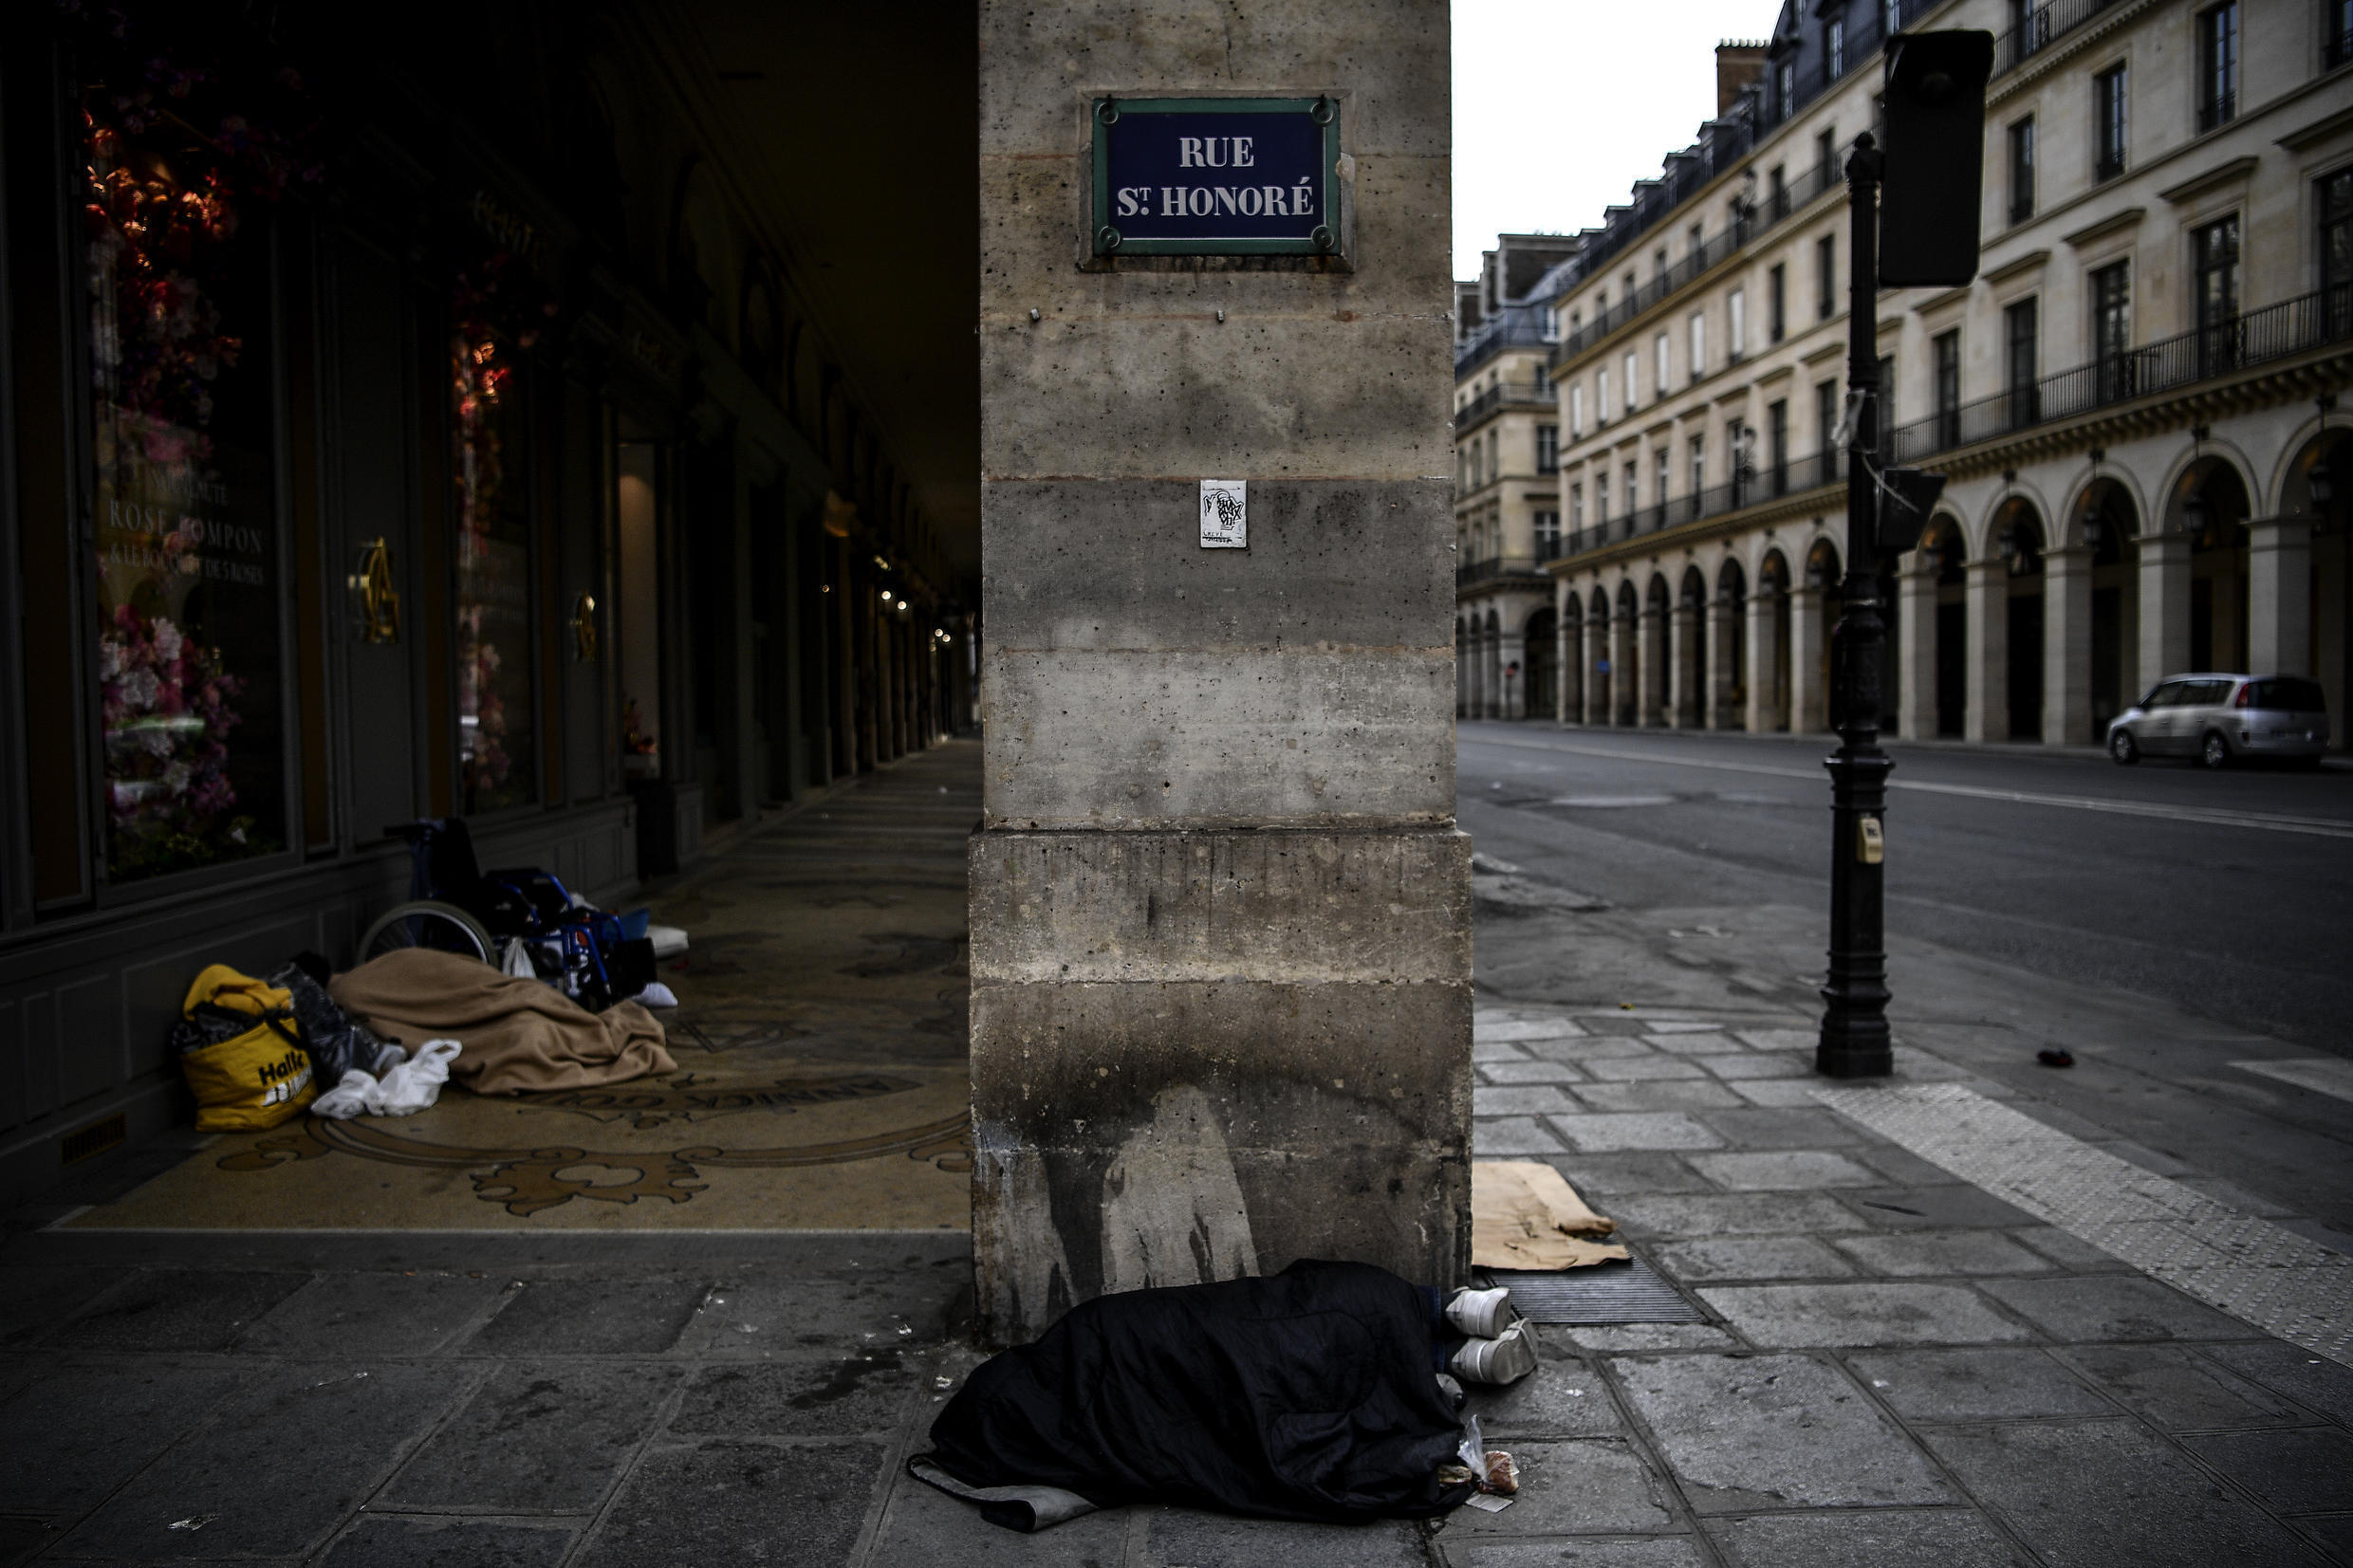 A homeless man sleeps on the pavement along rue St Honore in Paris on April 21, 2020.